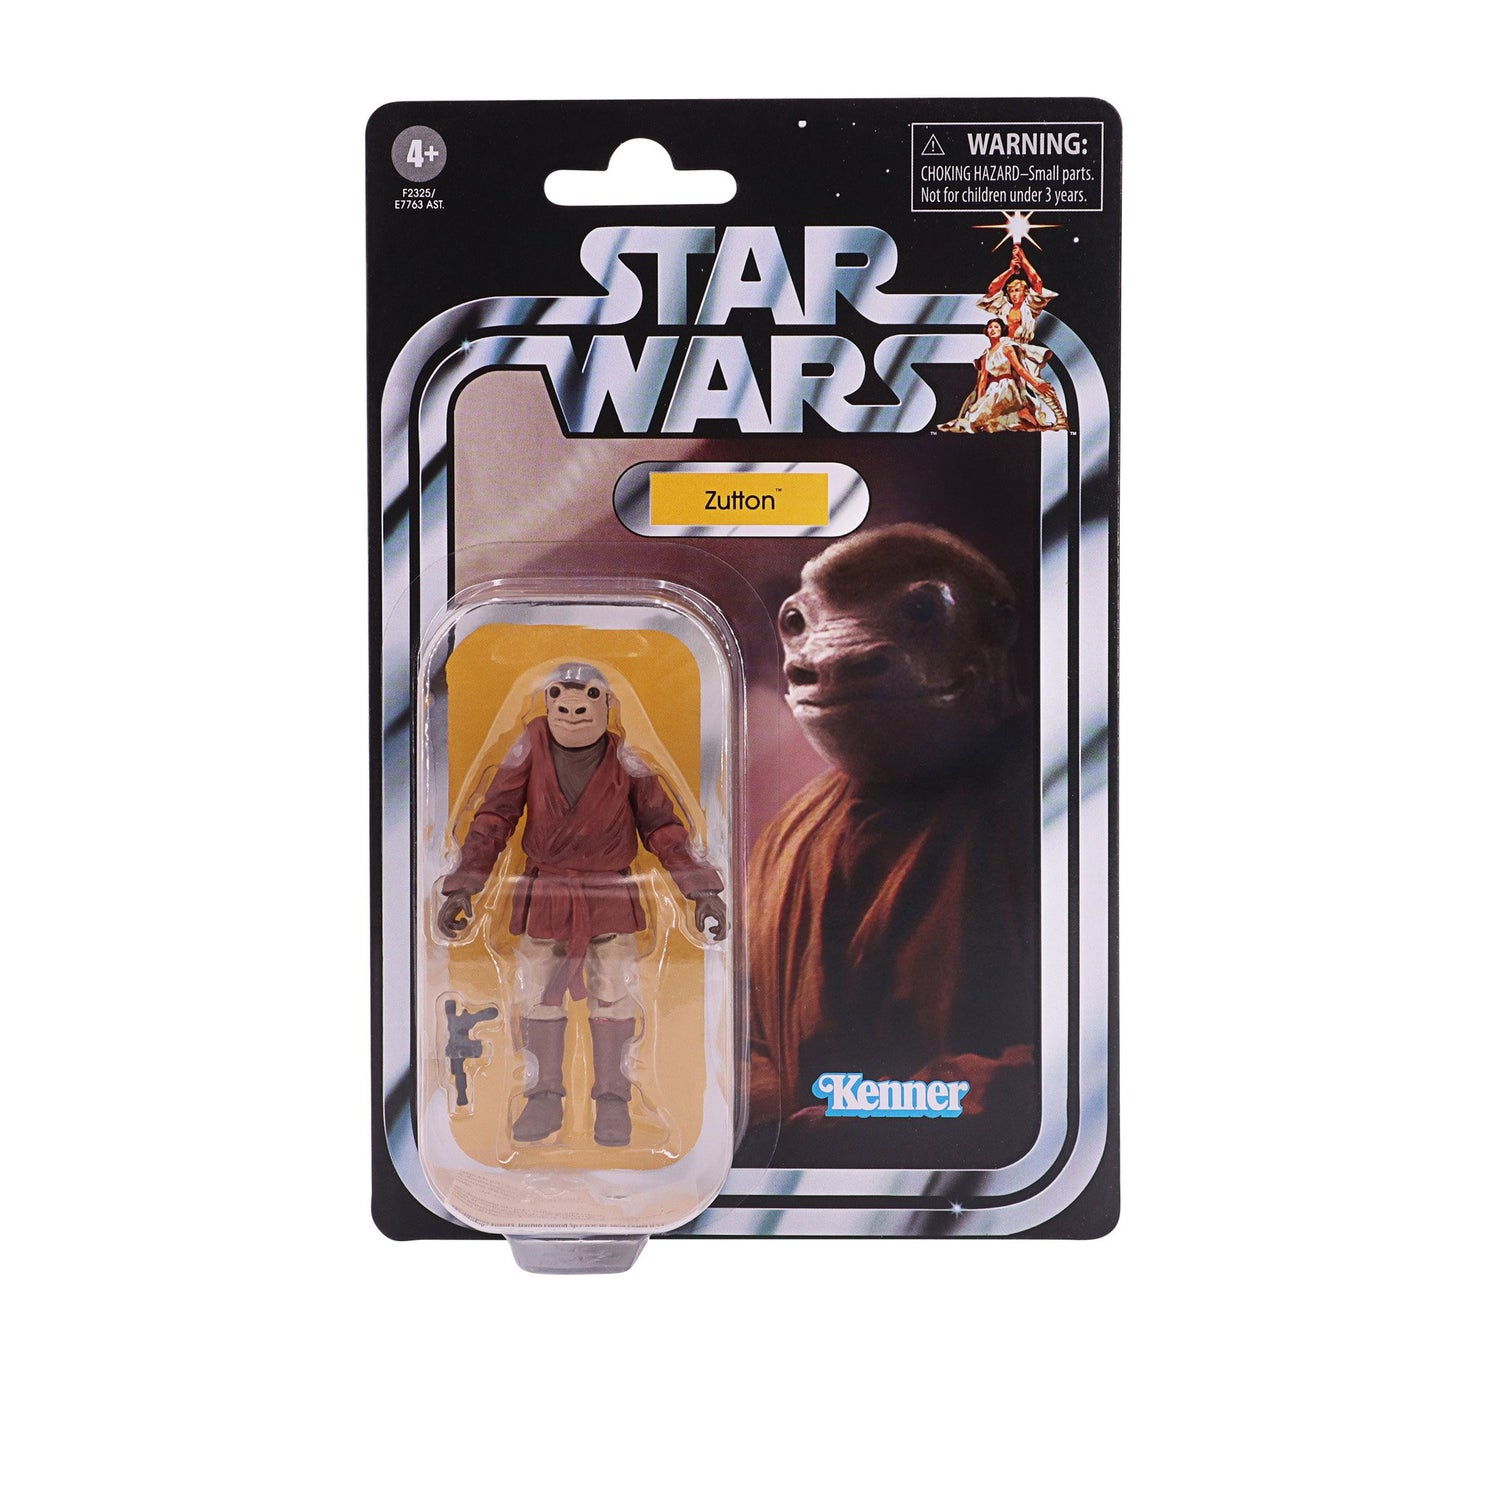 Image of Star Wars the vintage collection Zutton